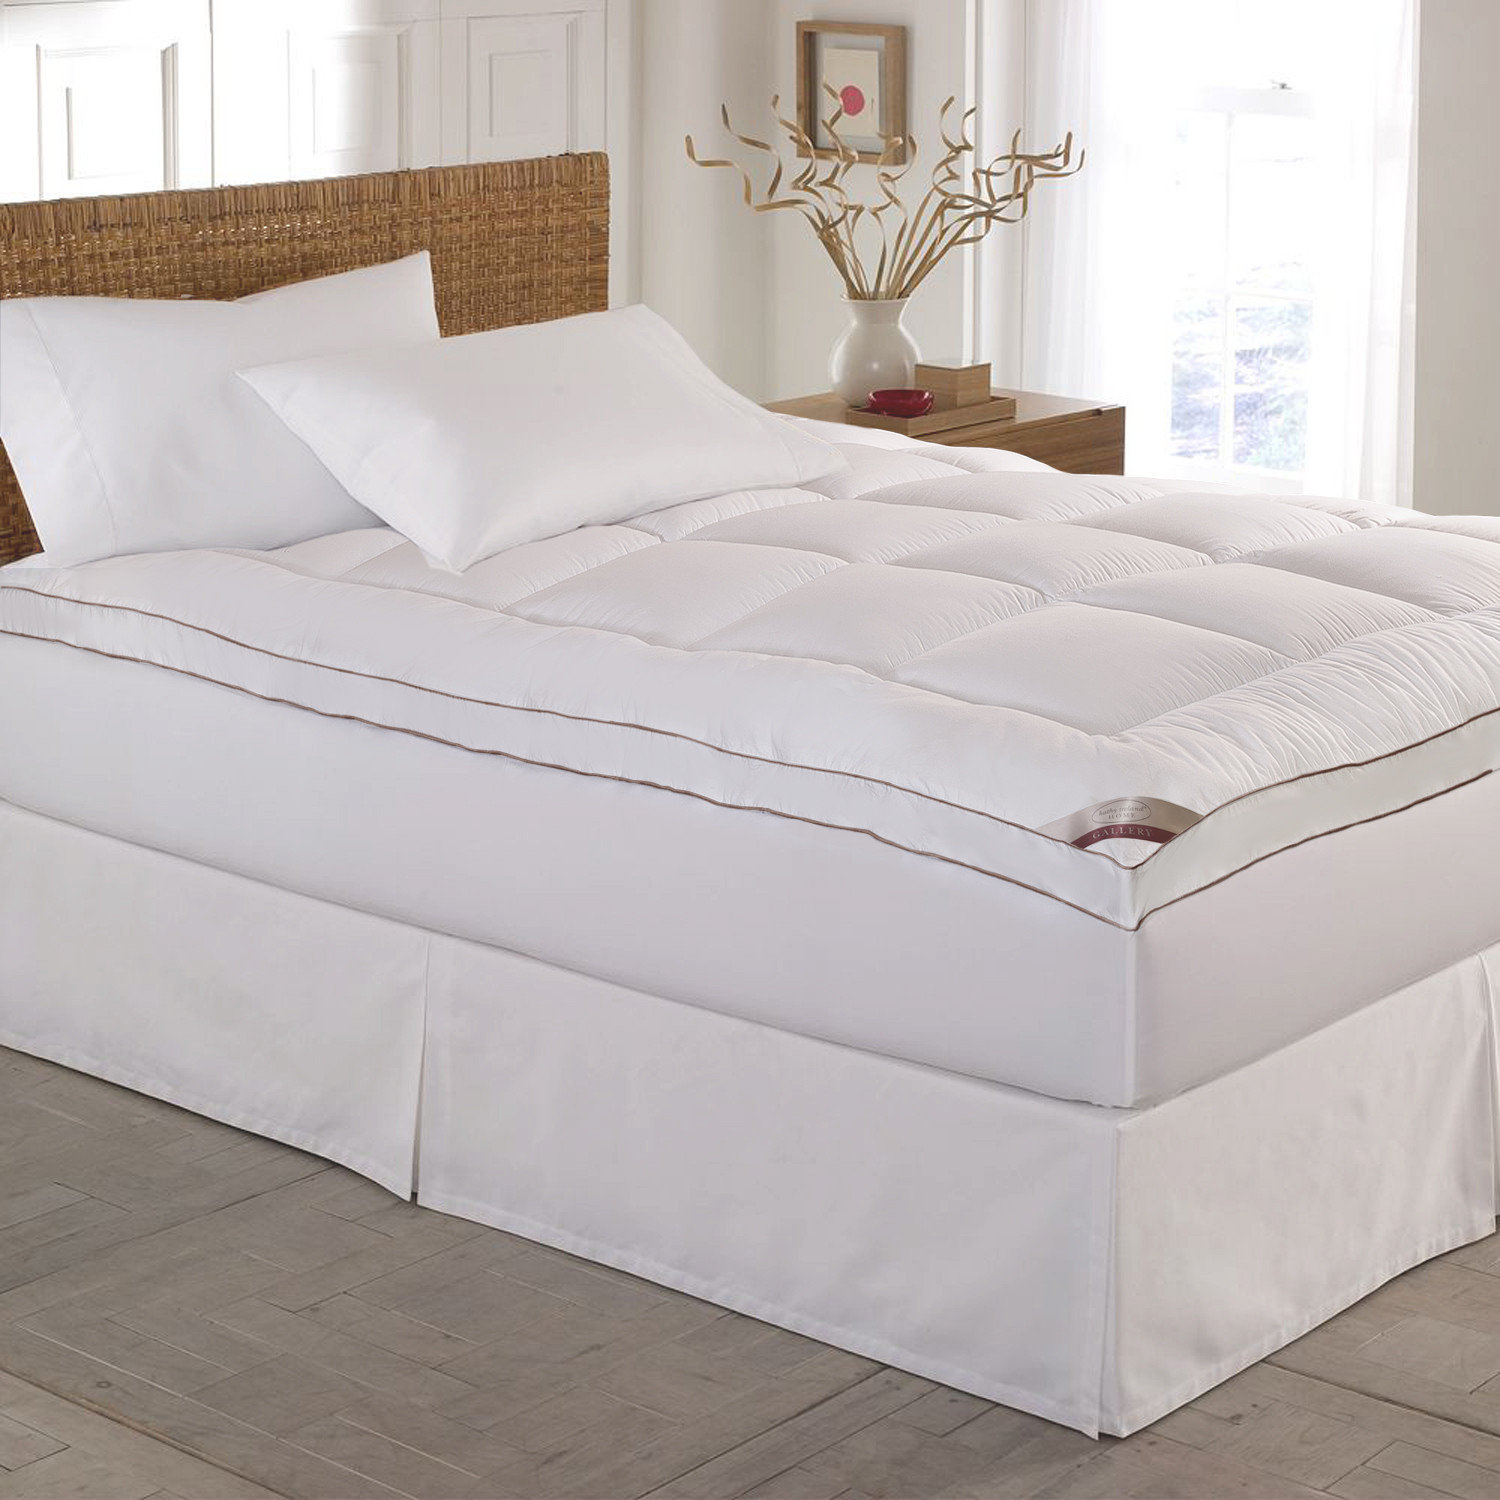 kathy ireland Home 233 Thread Count Down Alternative Fiber Bed Mattress Pad Topper by Overstock